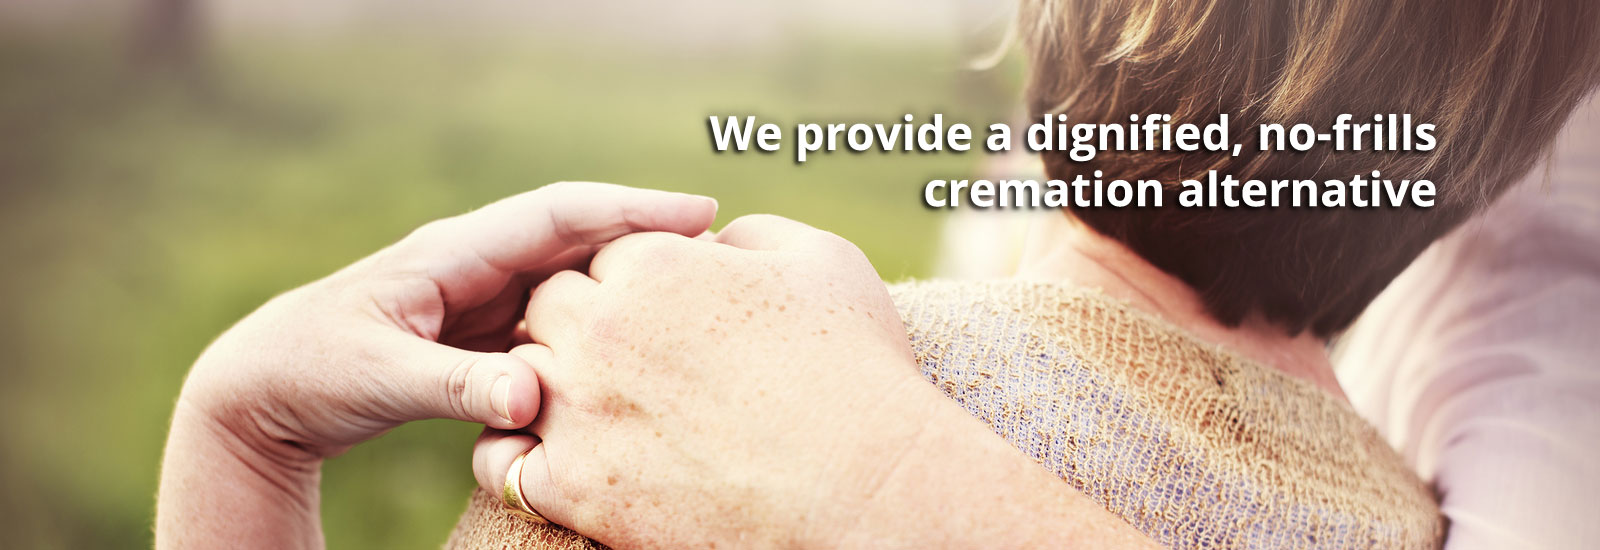 We provide a dignified, no-frills cremation alternative